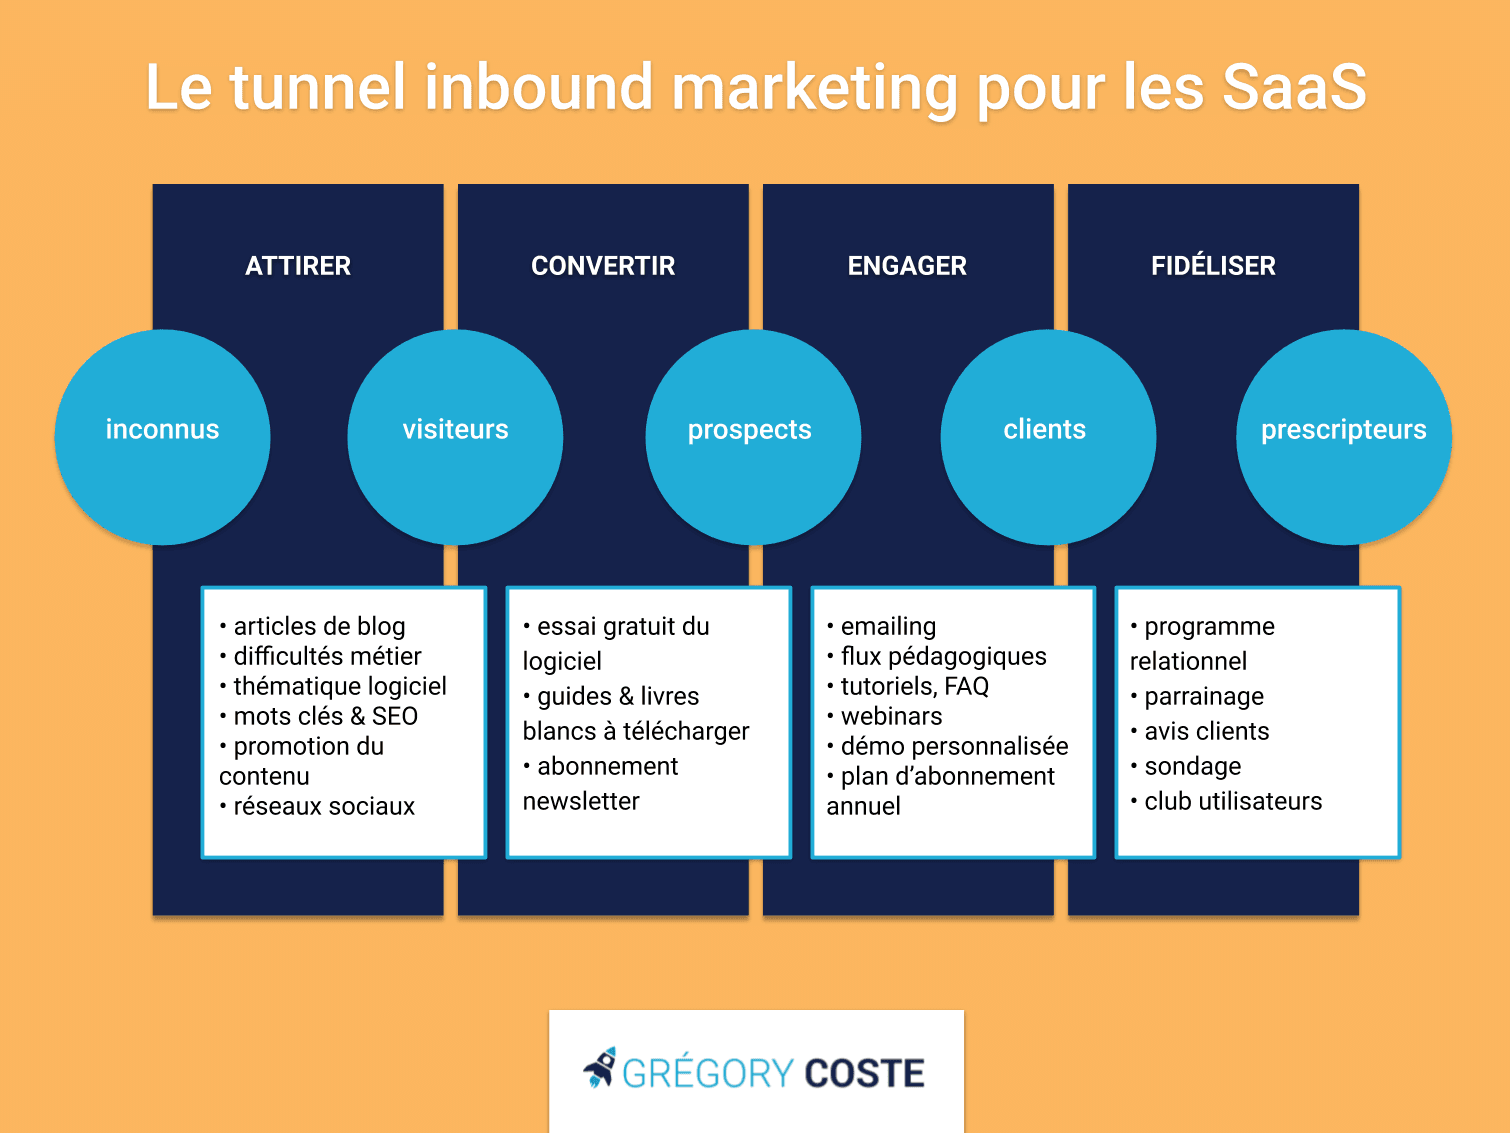 L'entonnoir de conversion inbound marketing